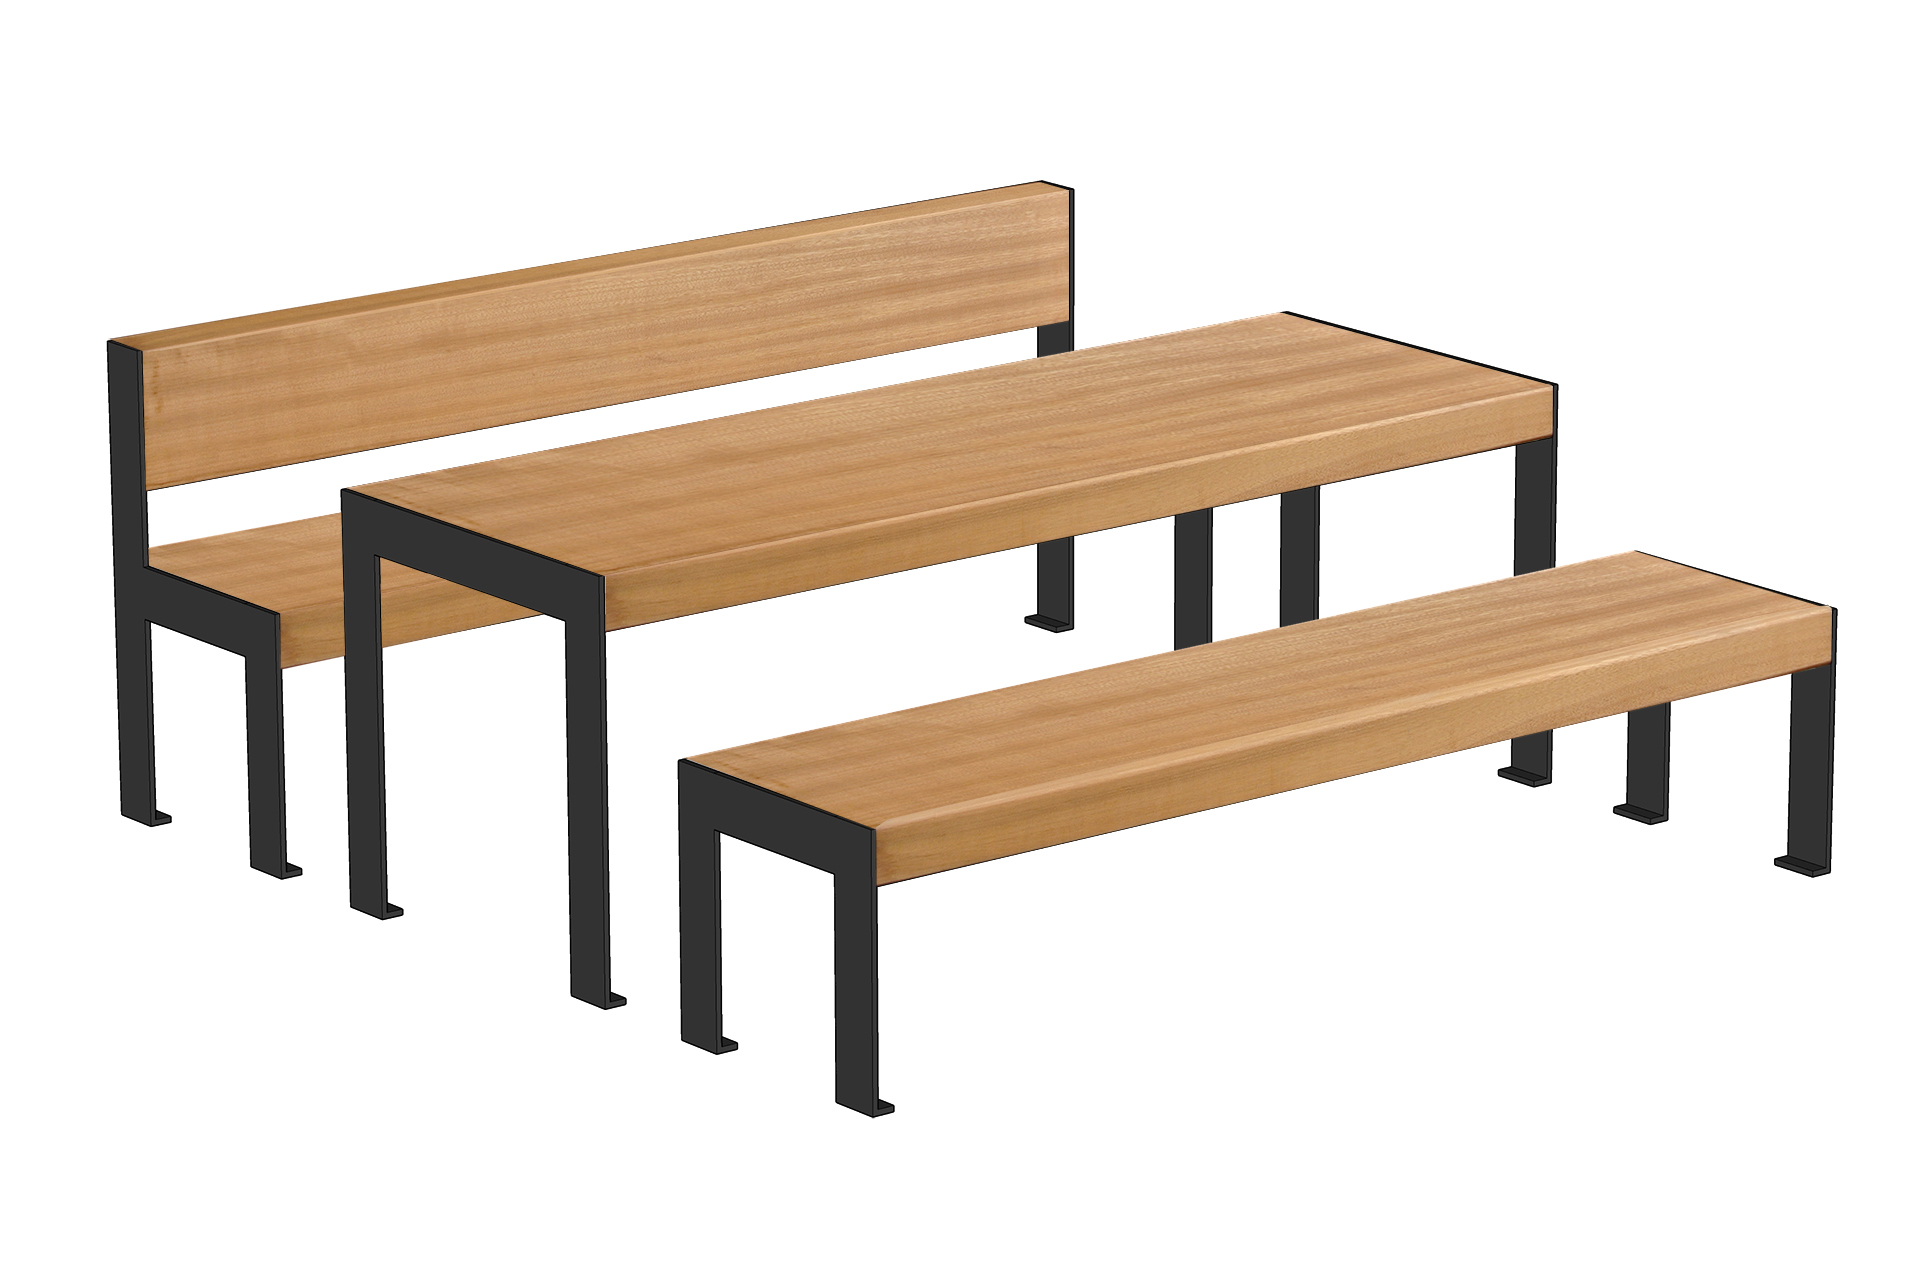 Djao-Rakitine Picnic Table 101